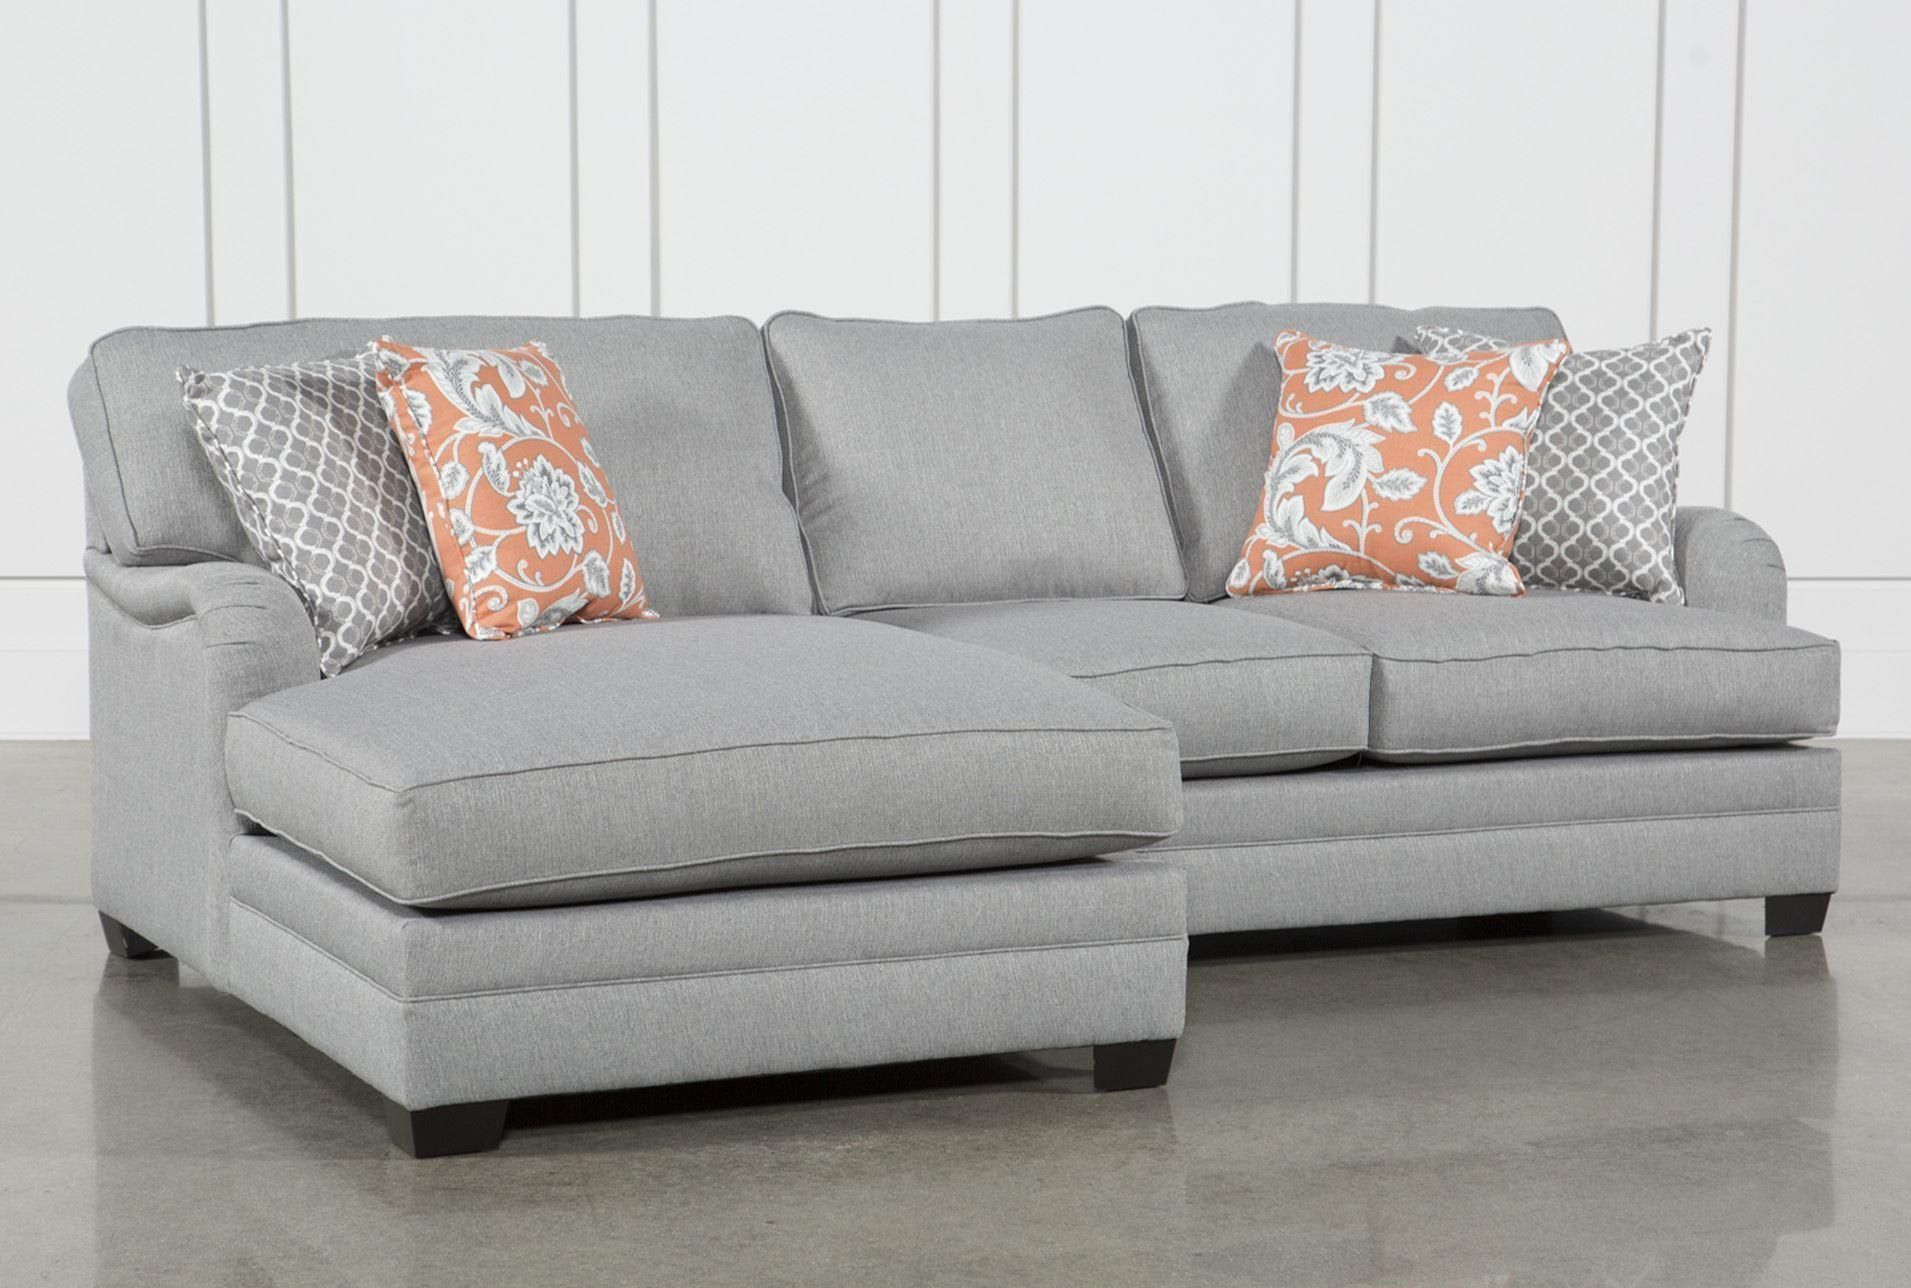 Marissa 2 Piece Sectional W/laf Chaise | Design Inspirations & Ideas With Regard To Marissa Sofa Chairs (Photo 5 of 20)